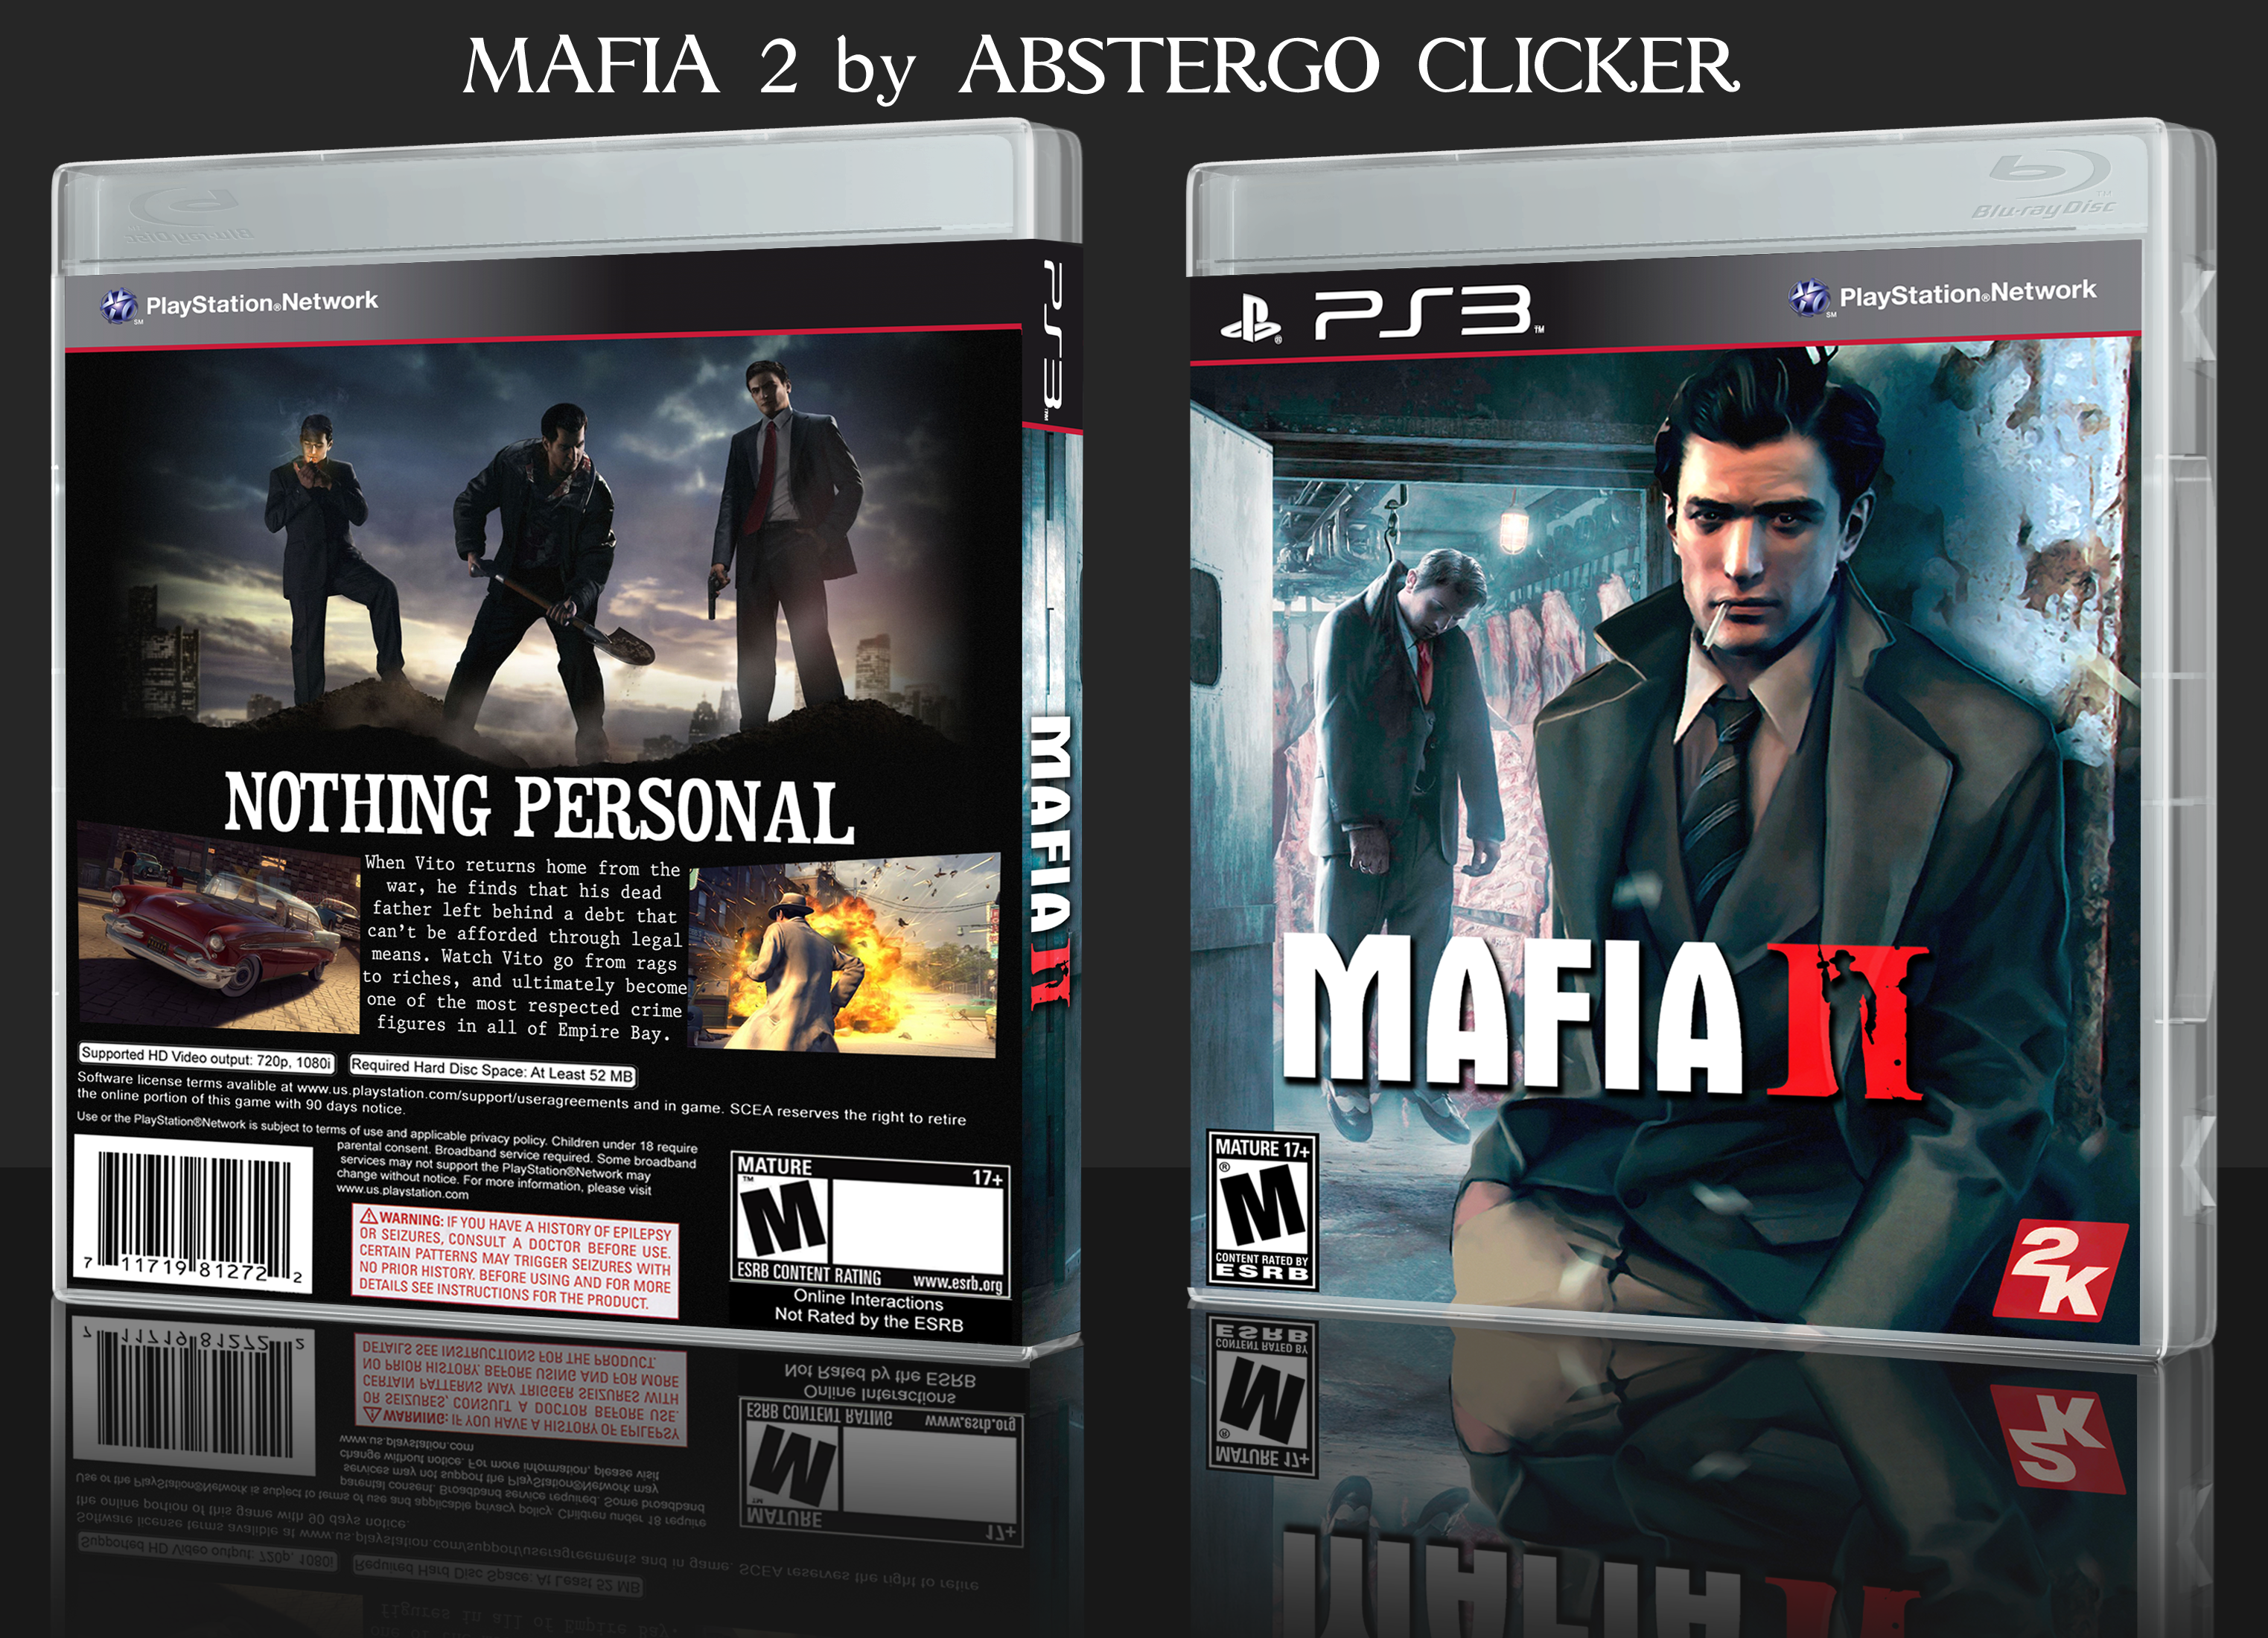 Mafia Games For Ps4 : Mafia playstation box art cover by abstergoclicker